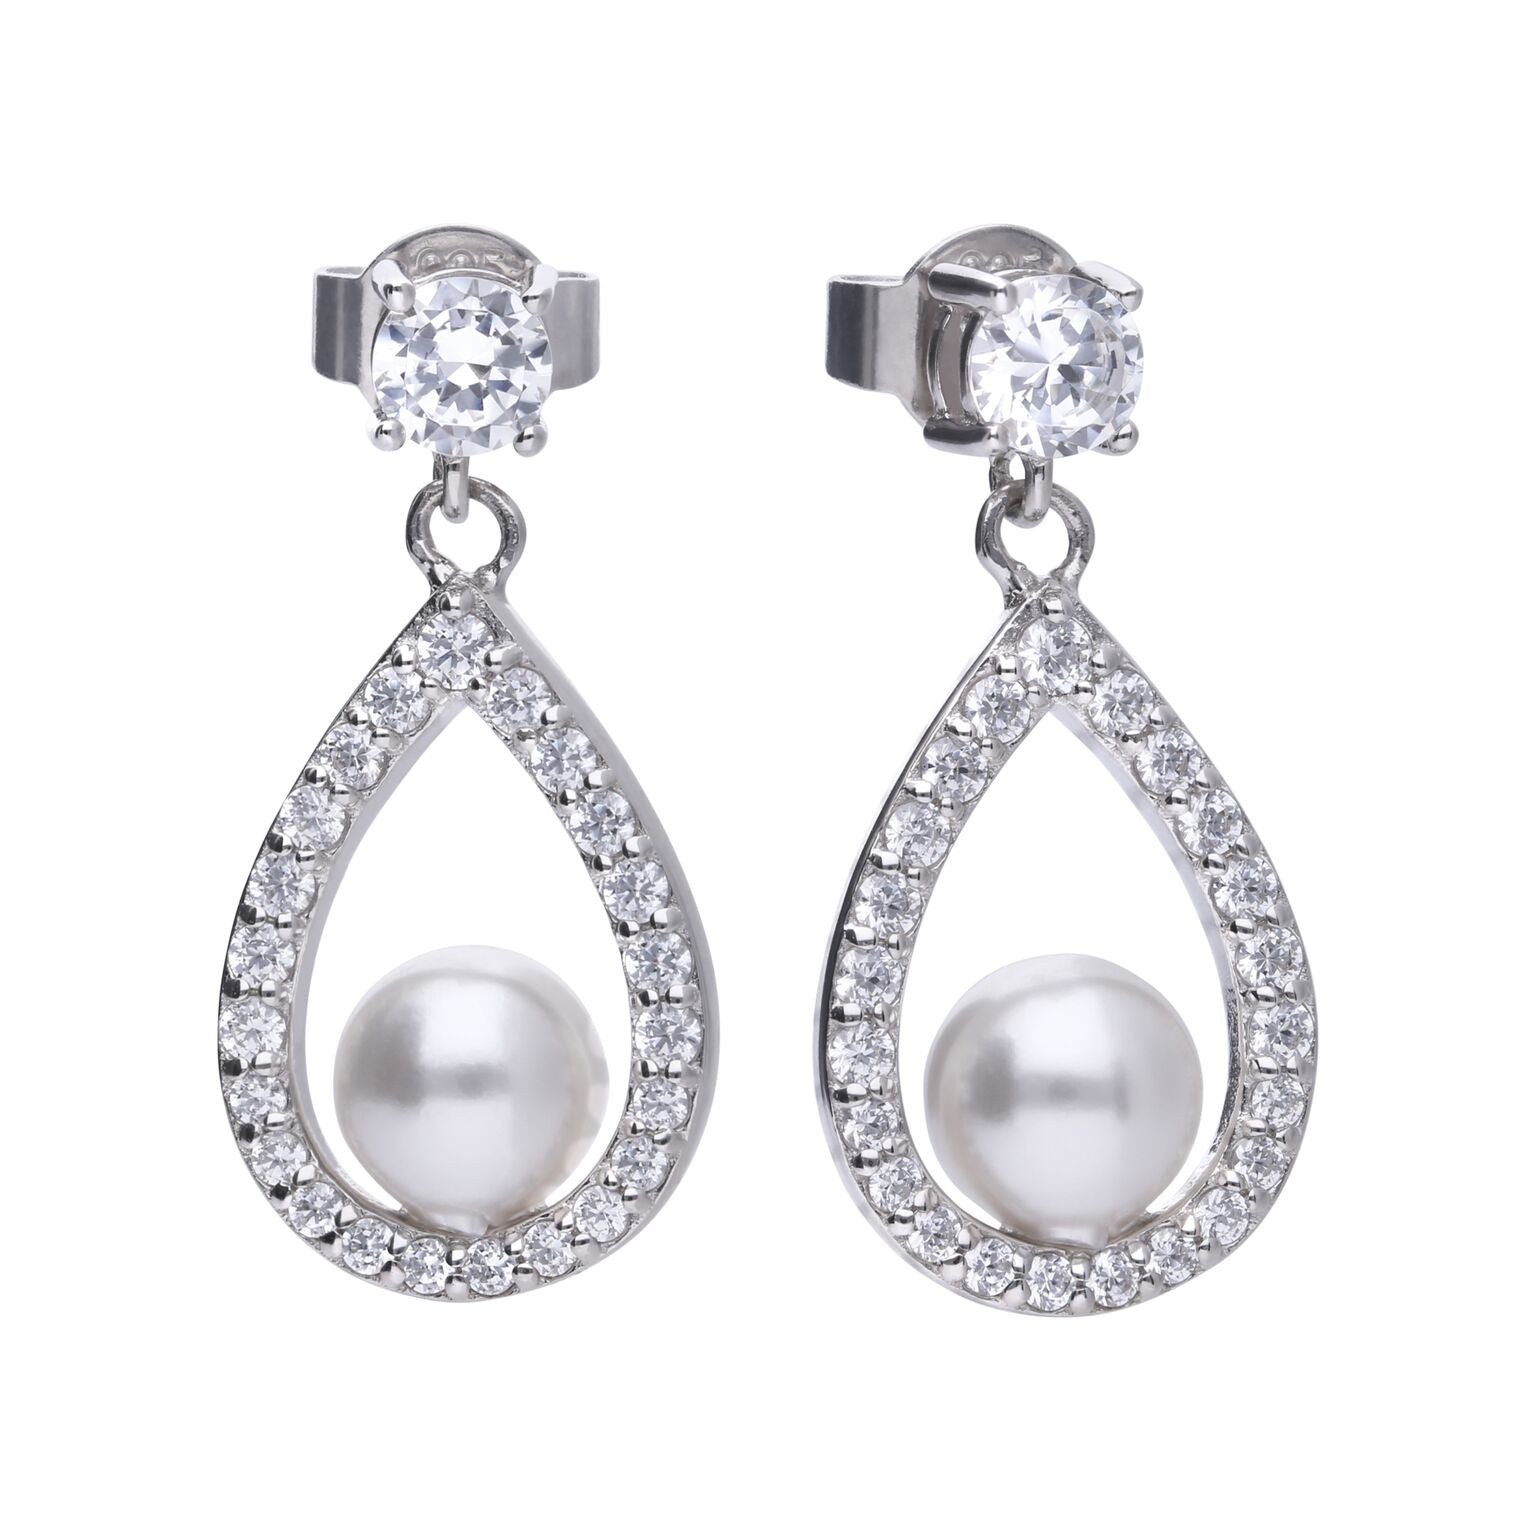 Diamondfire Teardrop Pearl Stud Earrings E5597